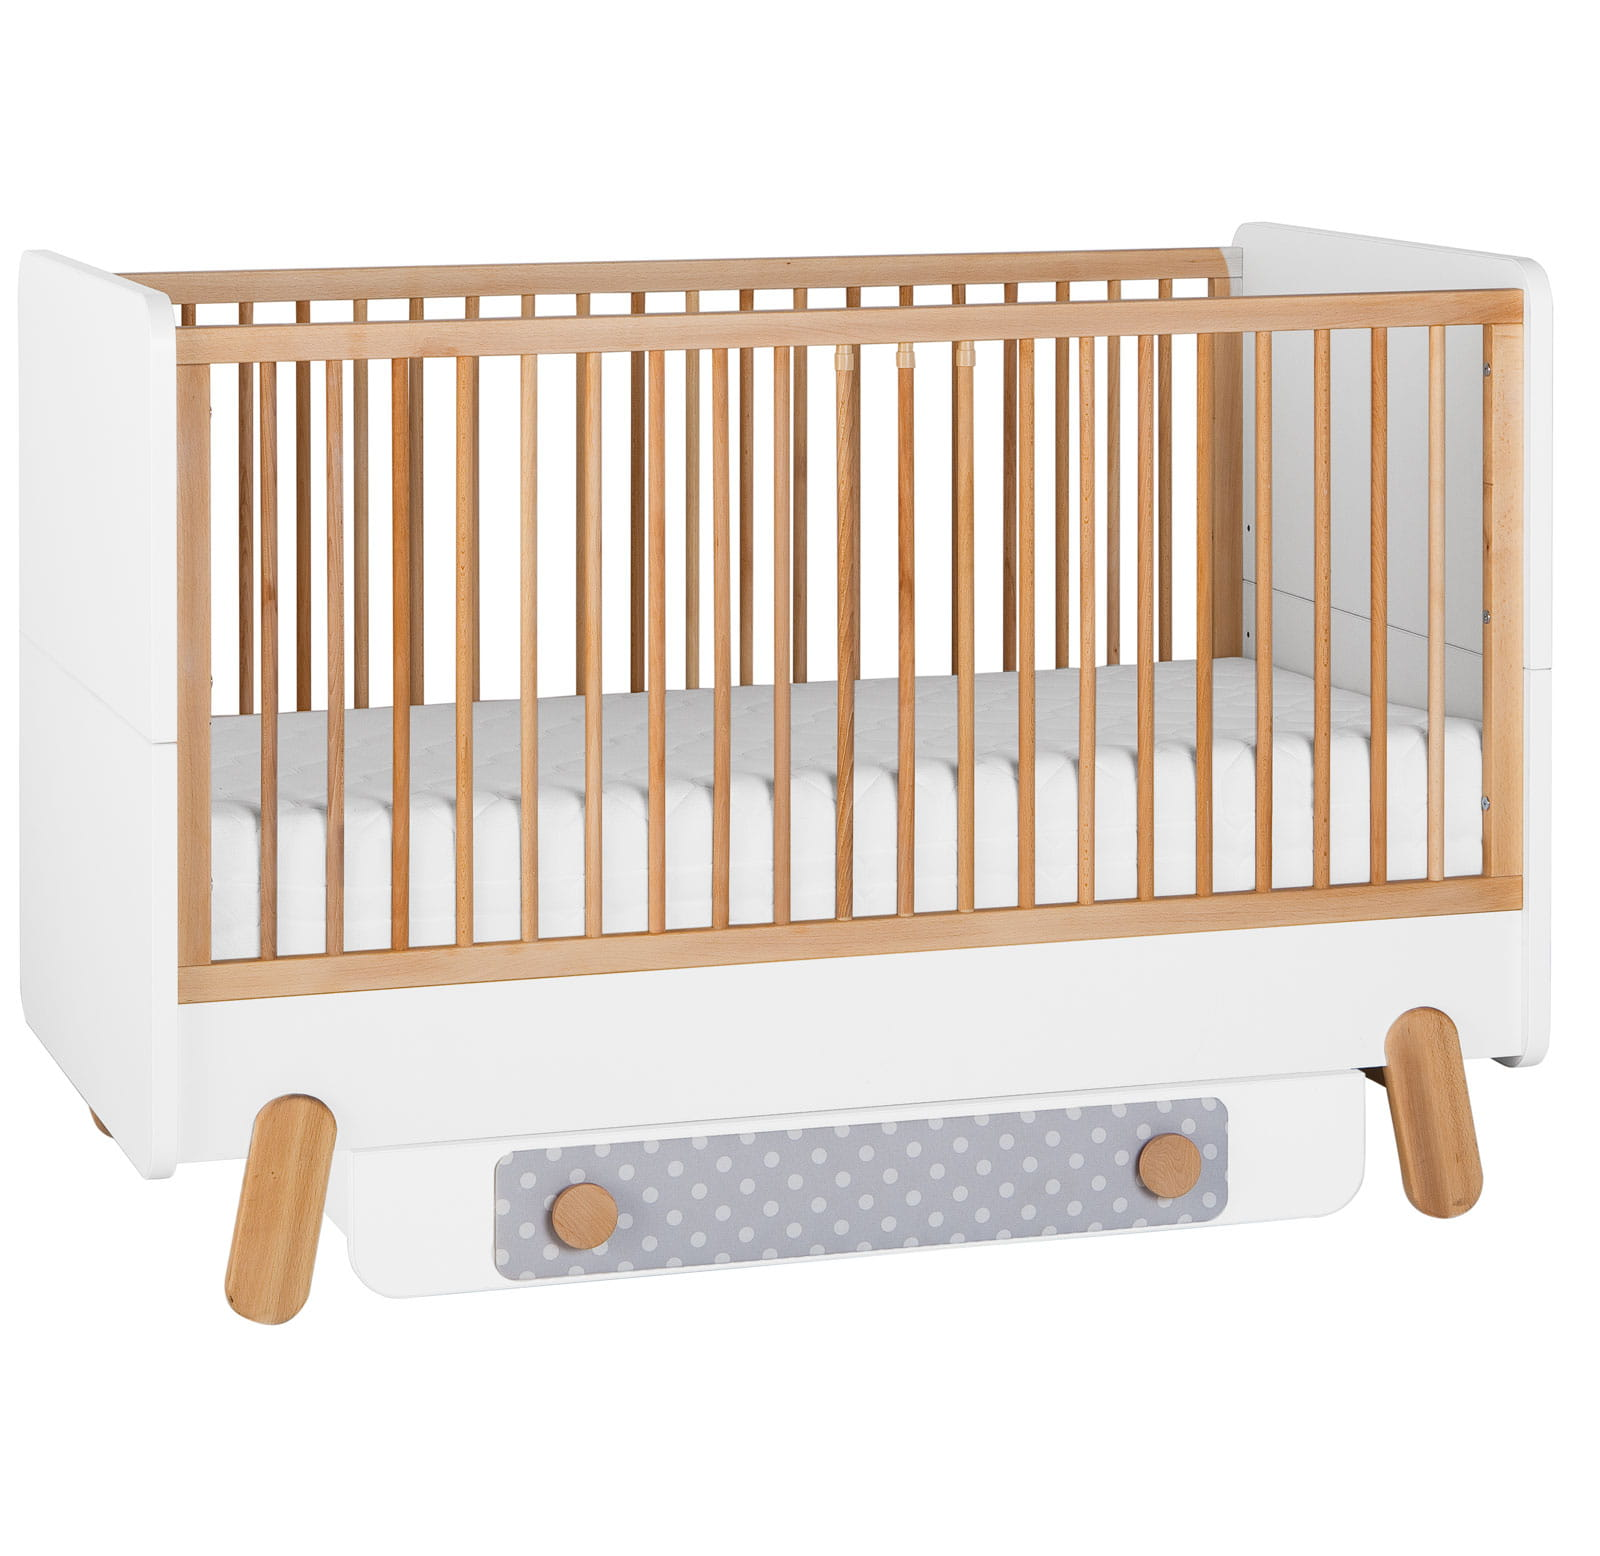 cot-bed 140x70+drawer+fabrics.jpg